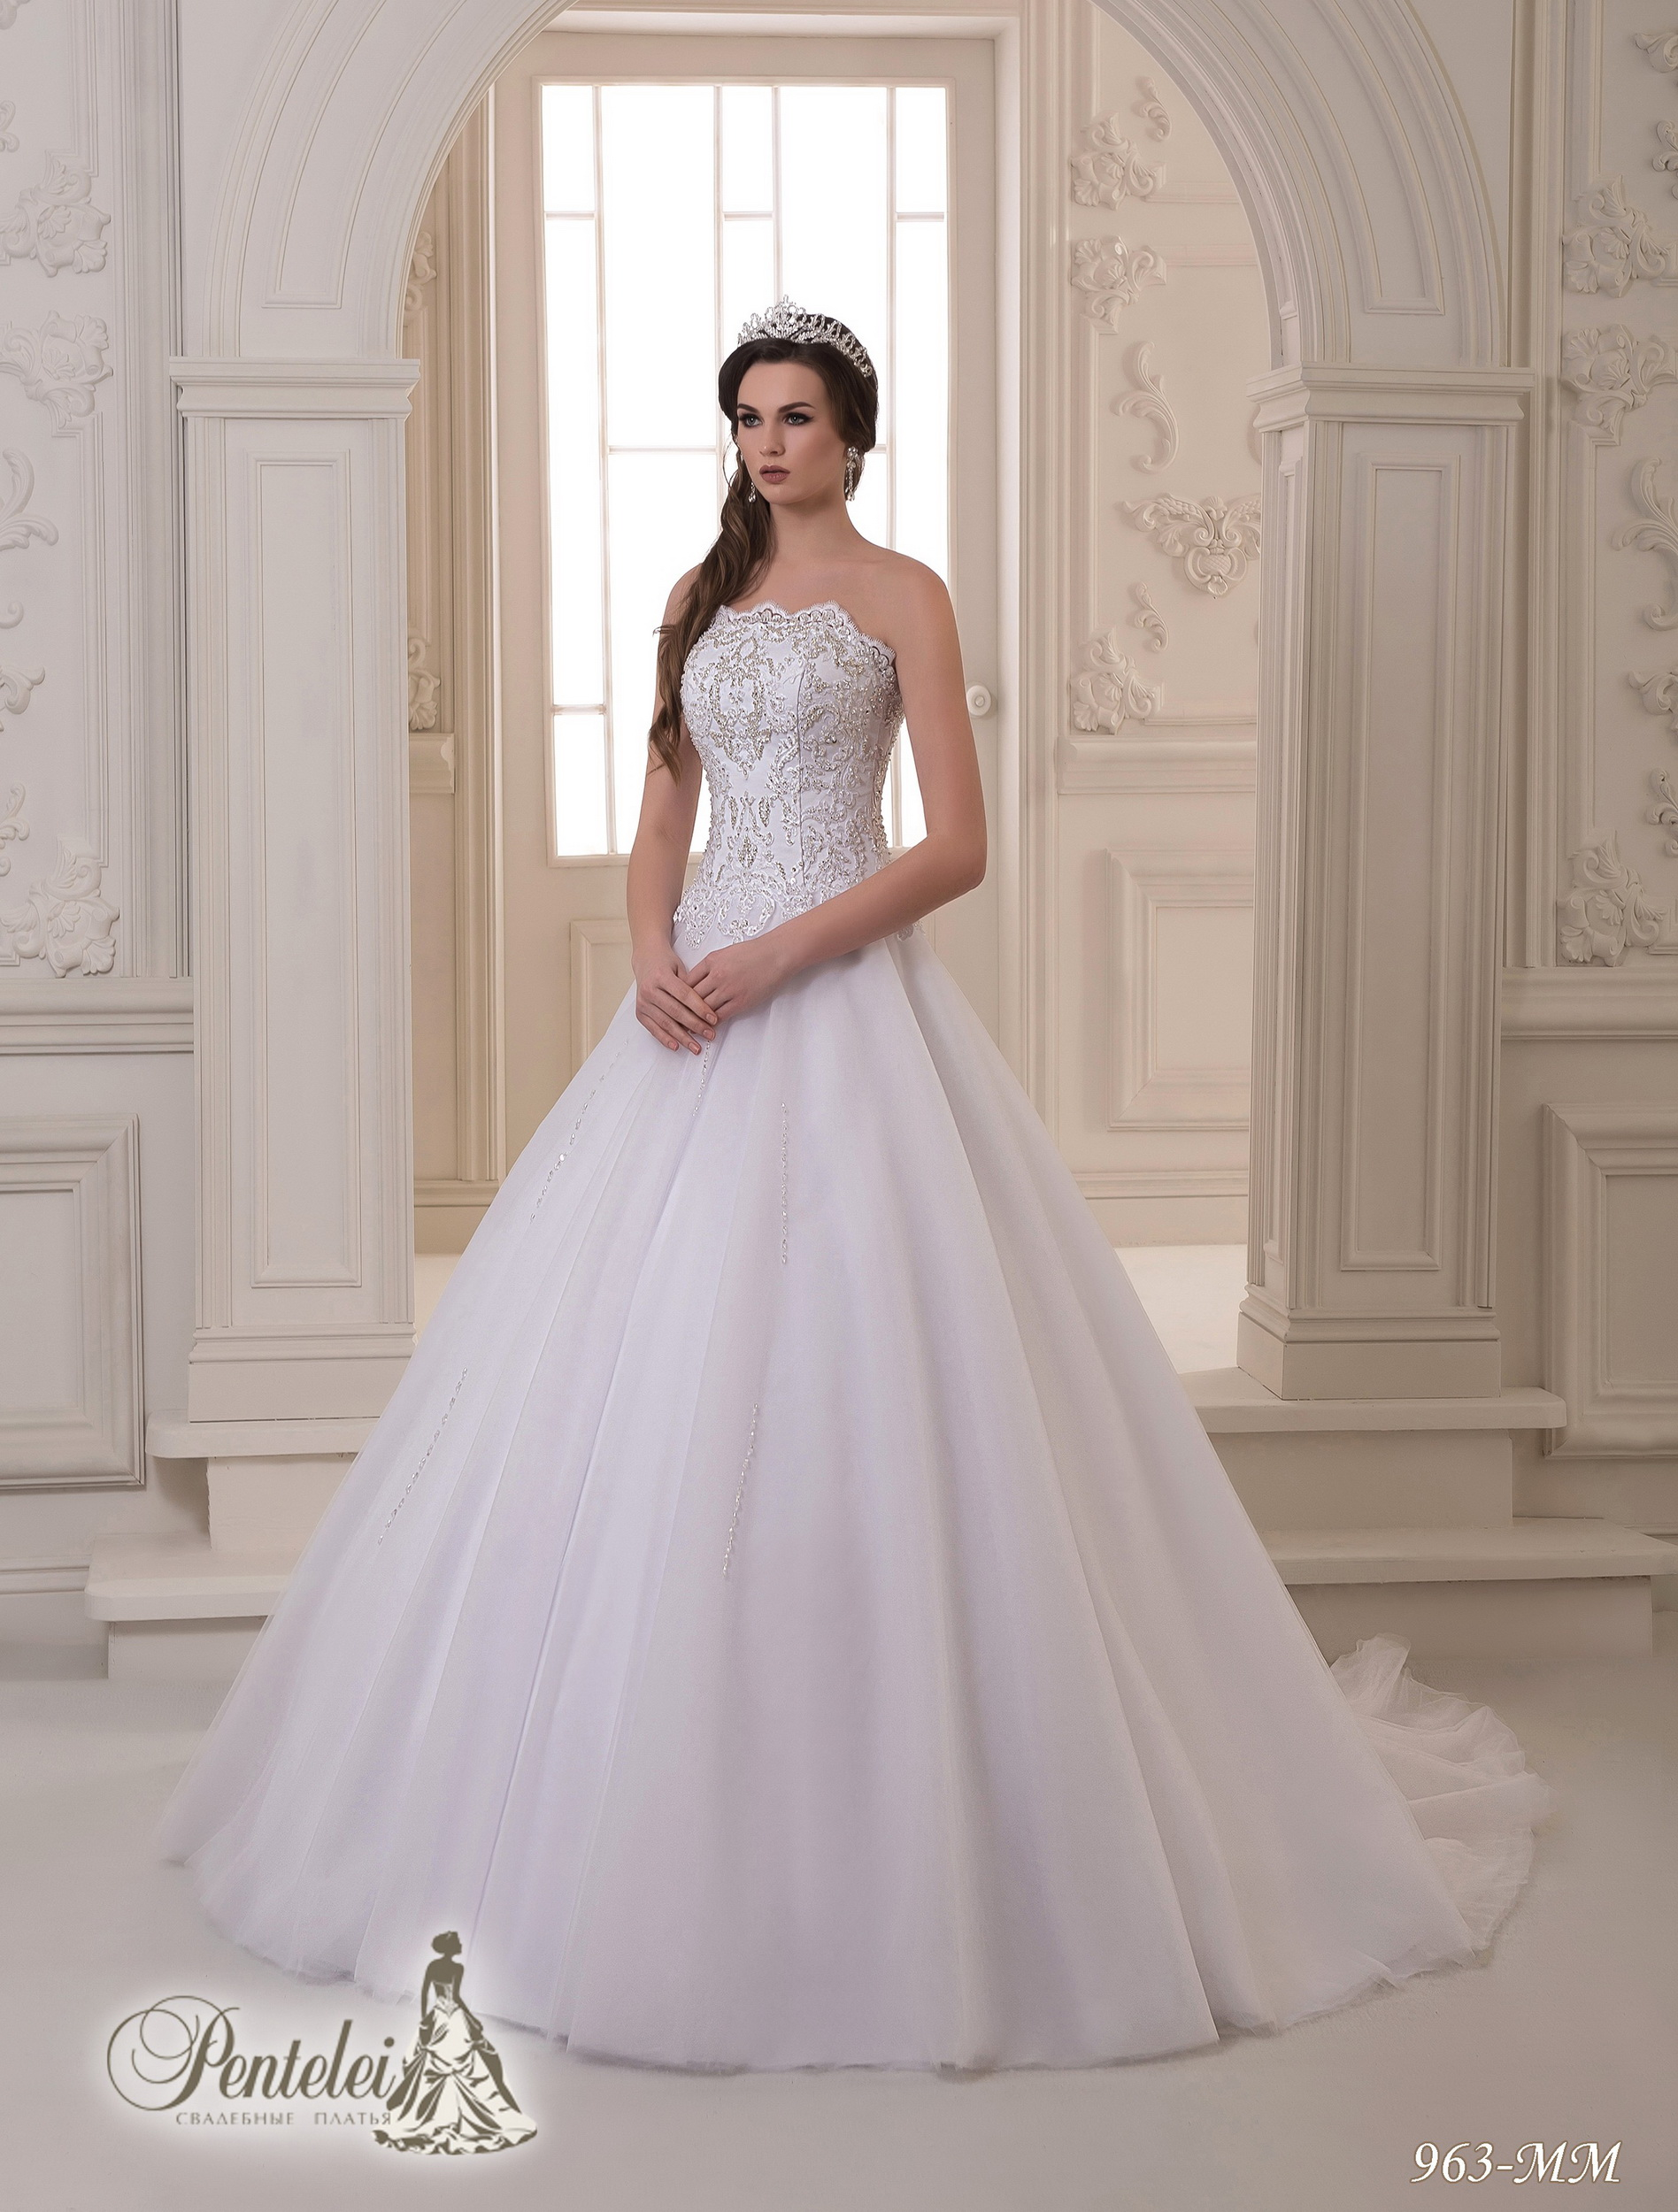 963-MM | Buy wedding dresses wholesale from Pentelei